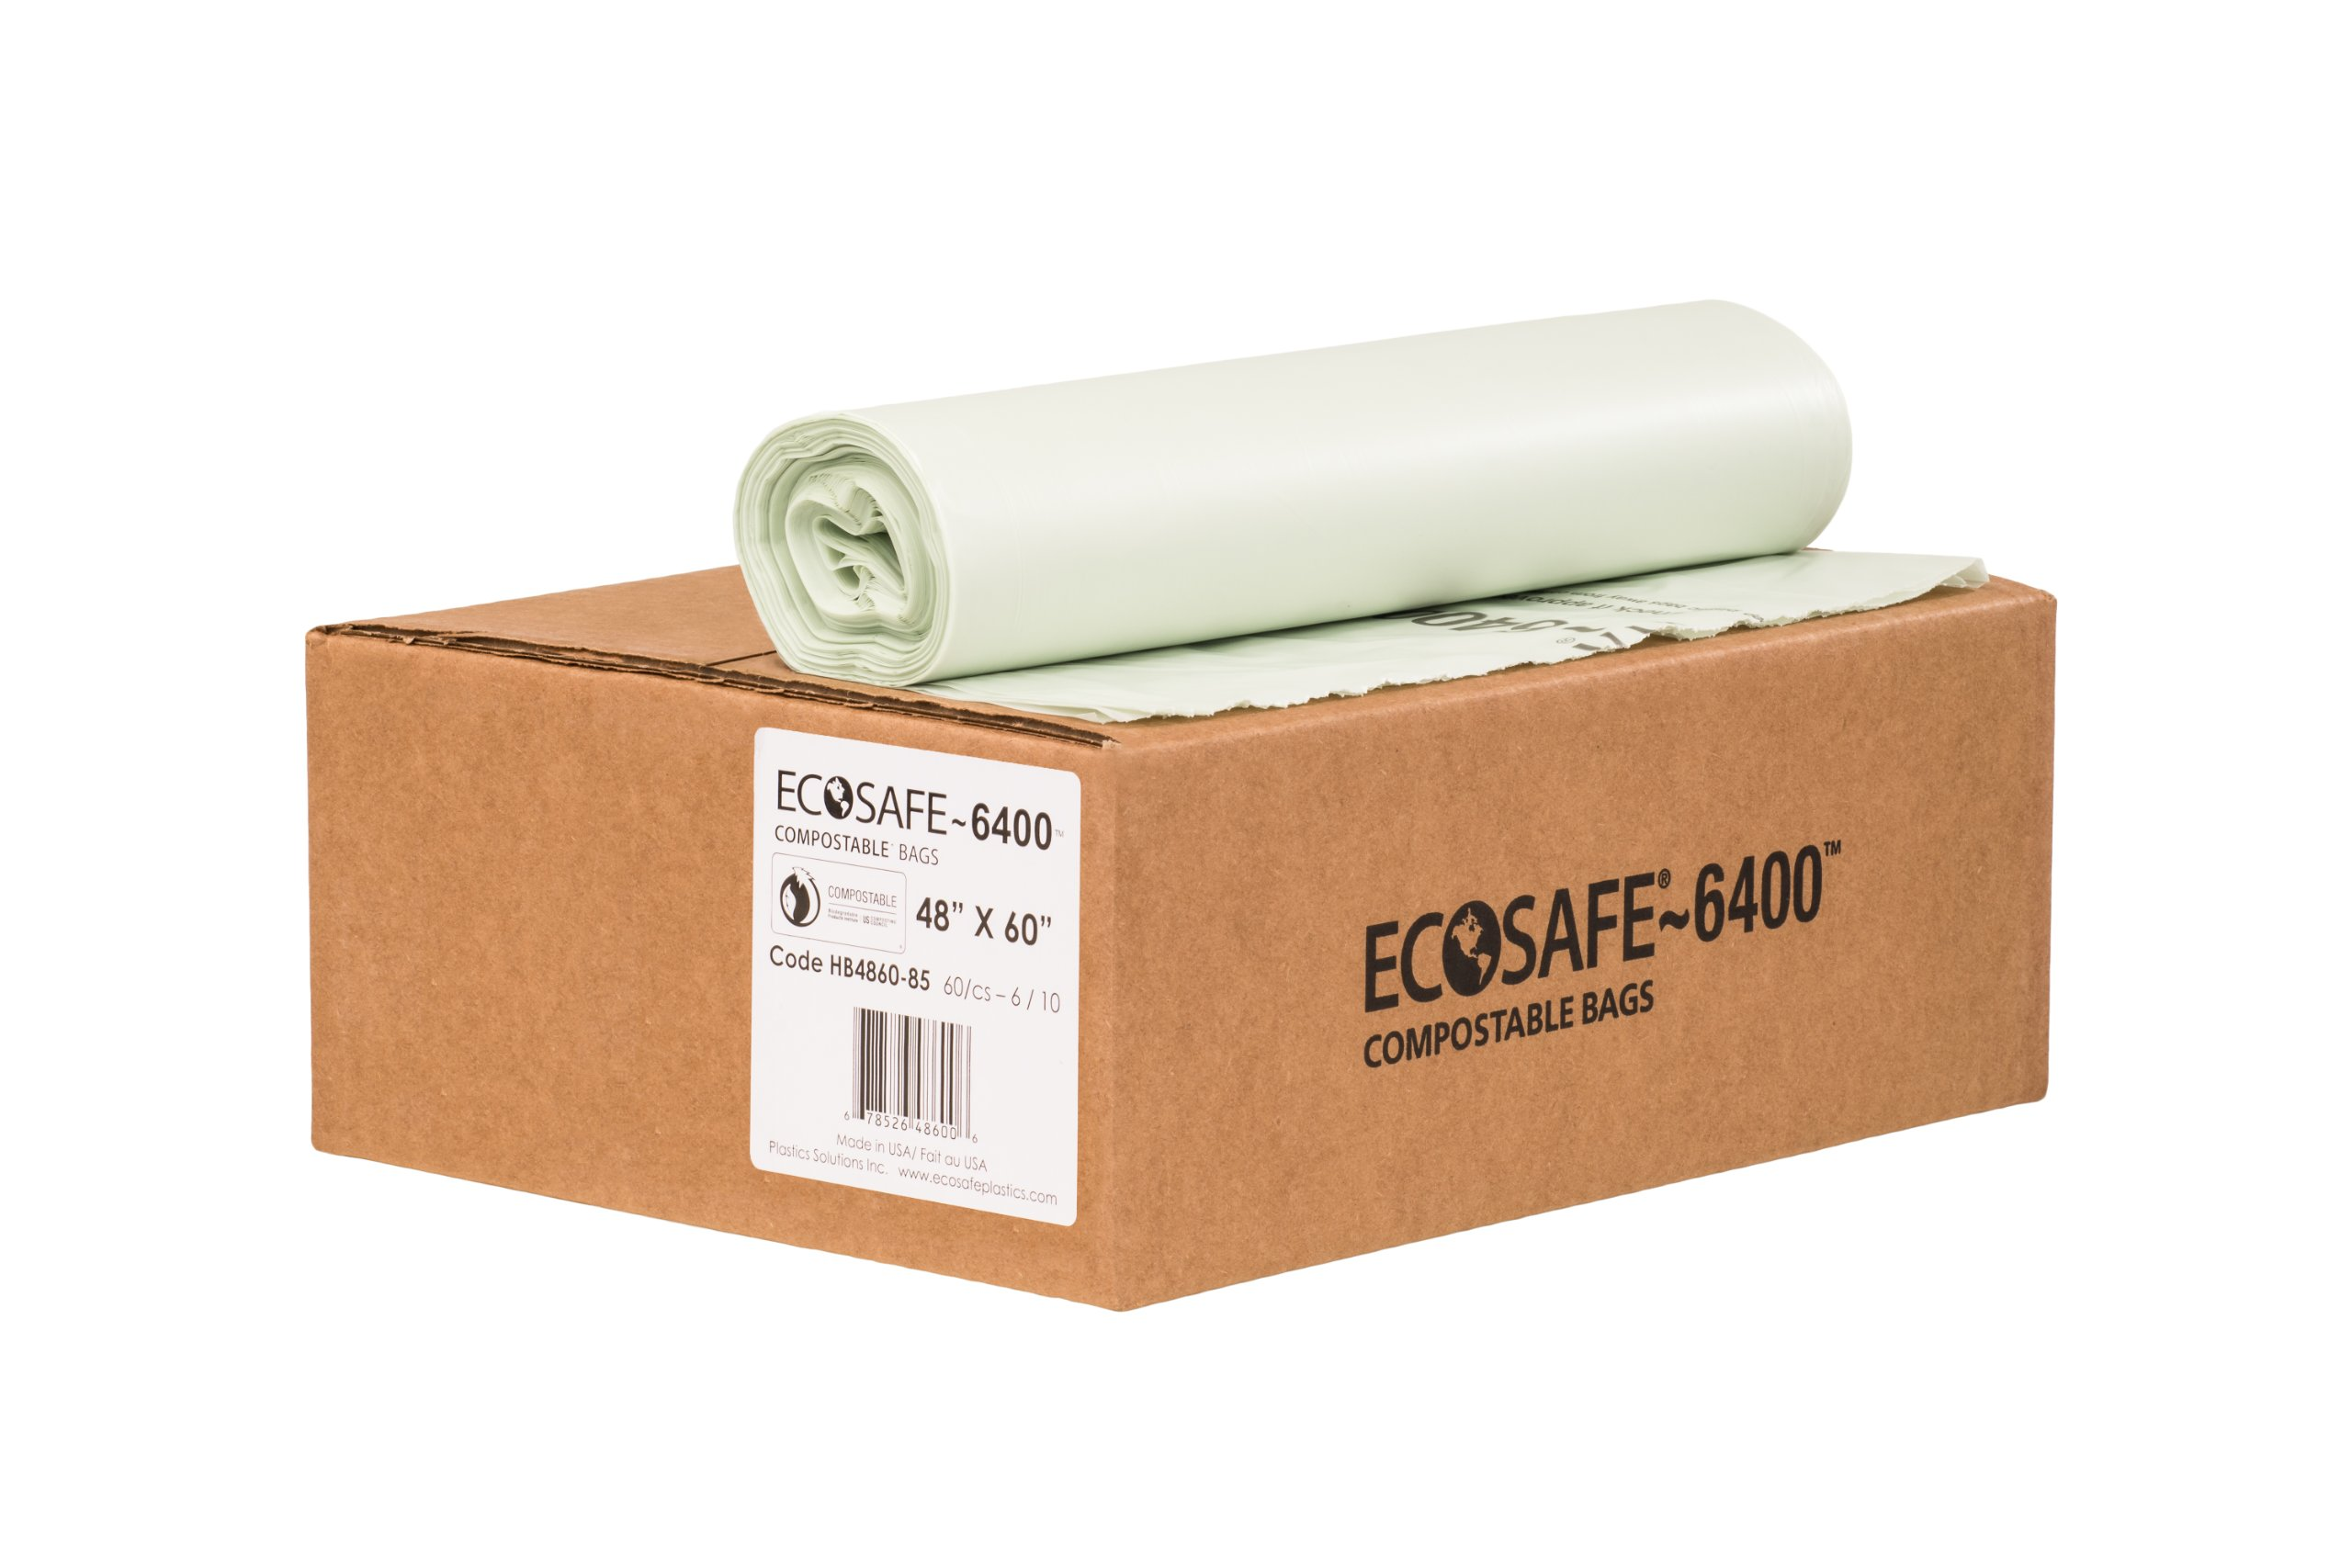 EcoSafe-6400 HB4860-85 Compostable Bag, Certified Compostable, 64-Gallon, Green (Pack of 60)